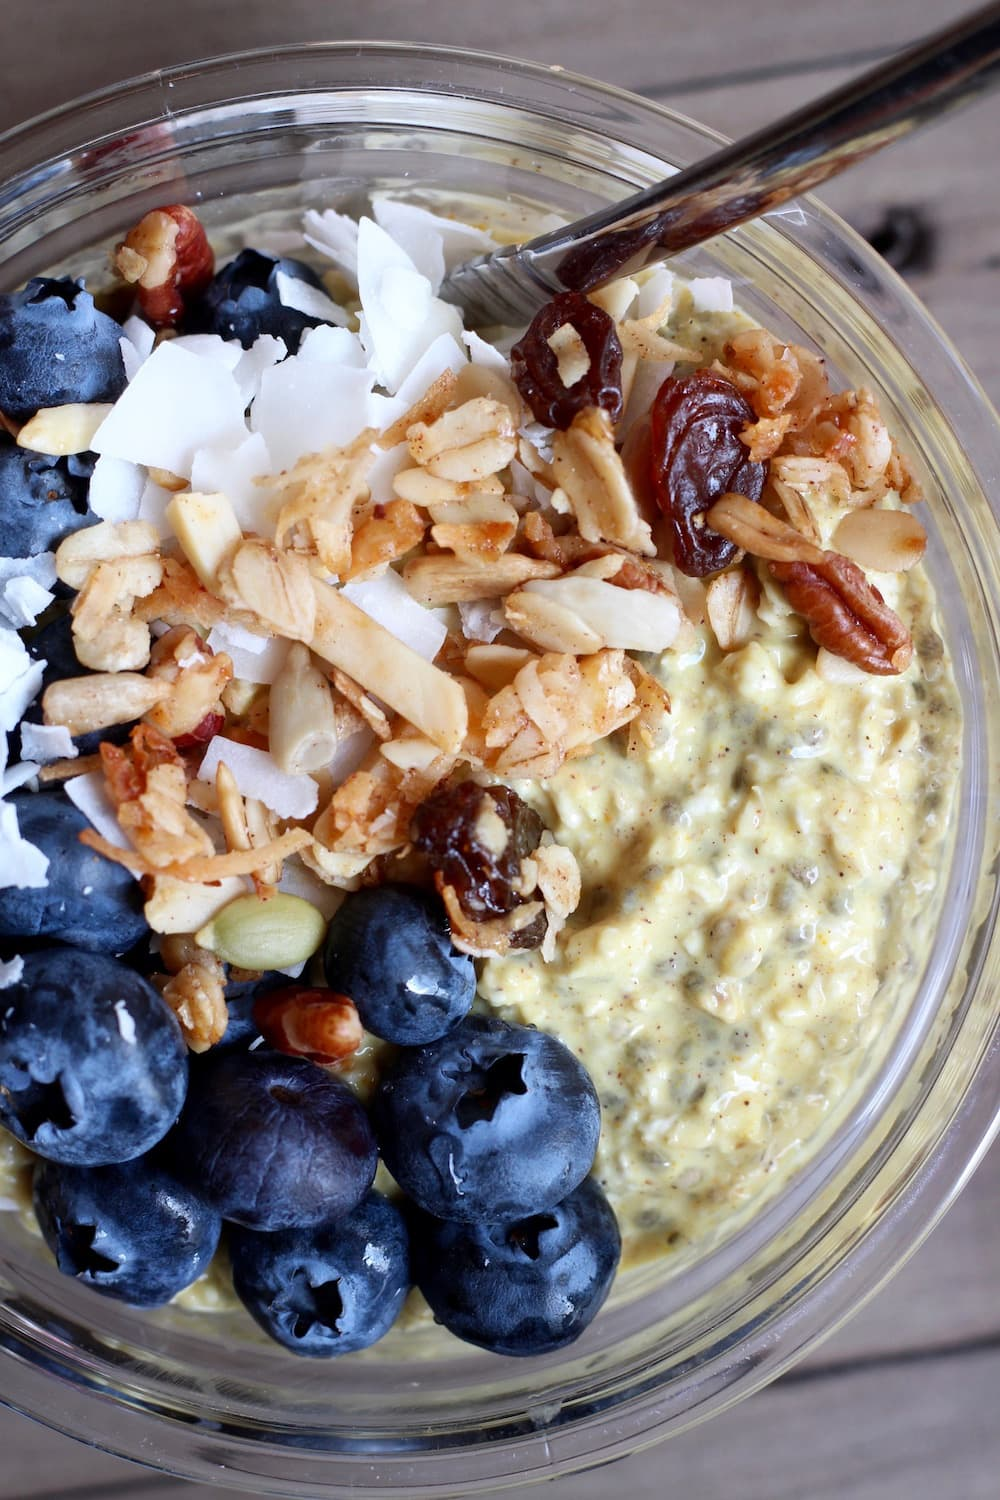 vegan golden milk overnight oats the conscientious eater. Black Bedroom Furniture Sets. Home Design Ideas